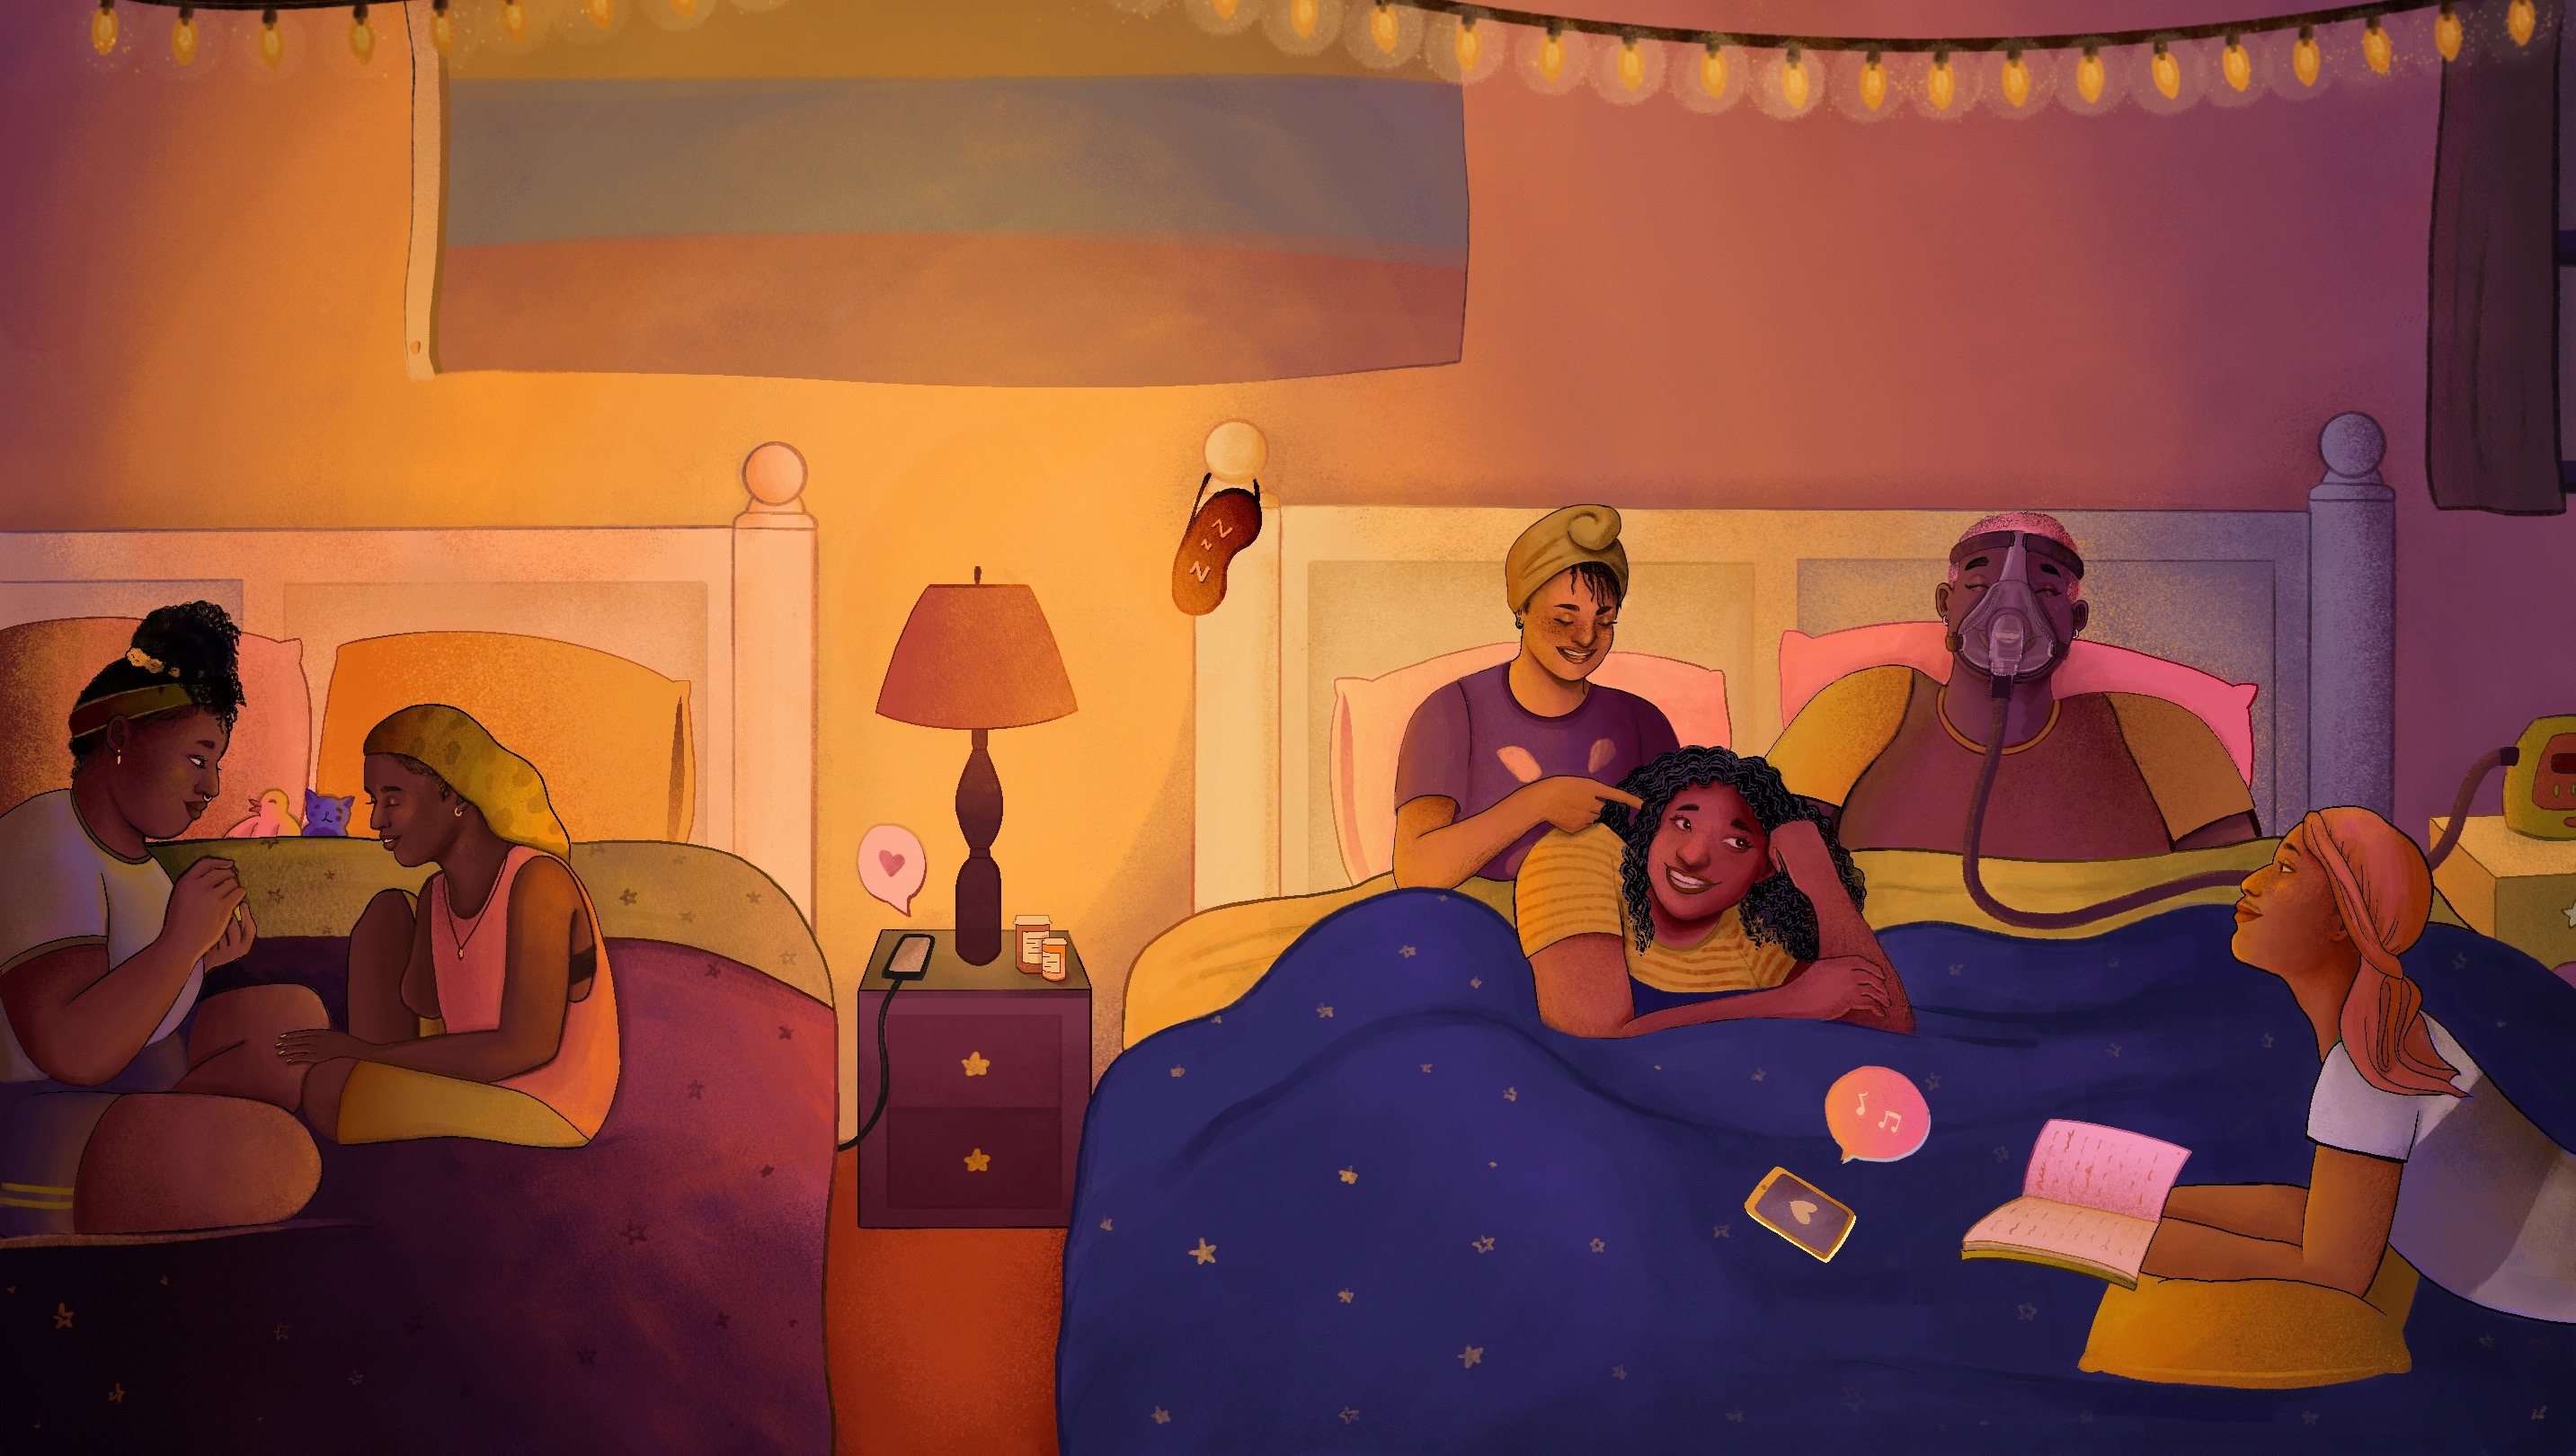 A group of disabled queer Black folks talk and laugh at a sleepover, relaxing across two large beds. Everyone is dressed in colorful t-shirts and wearing a variety of sleep scarves, bonnets, and durags. On the left, two friends sit on one bed and paint each other's nails. On the right, four people lounge on a bed: one person braids another's hair while the third friend wearing a C-PAP mask laughs, and the fourth person looks up from their book. In the center, a bedside lamp illuminates the room in warm light while pill bottles adorn an end table.